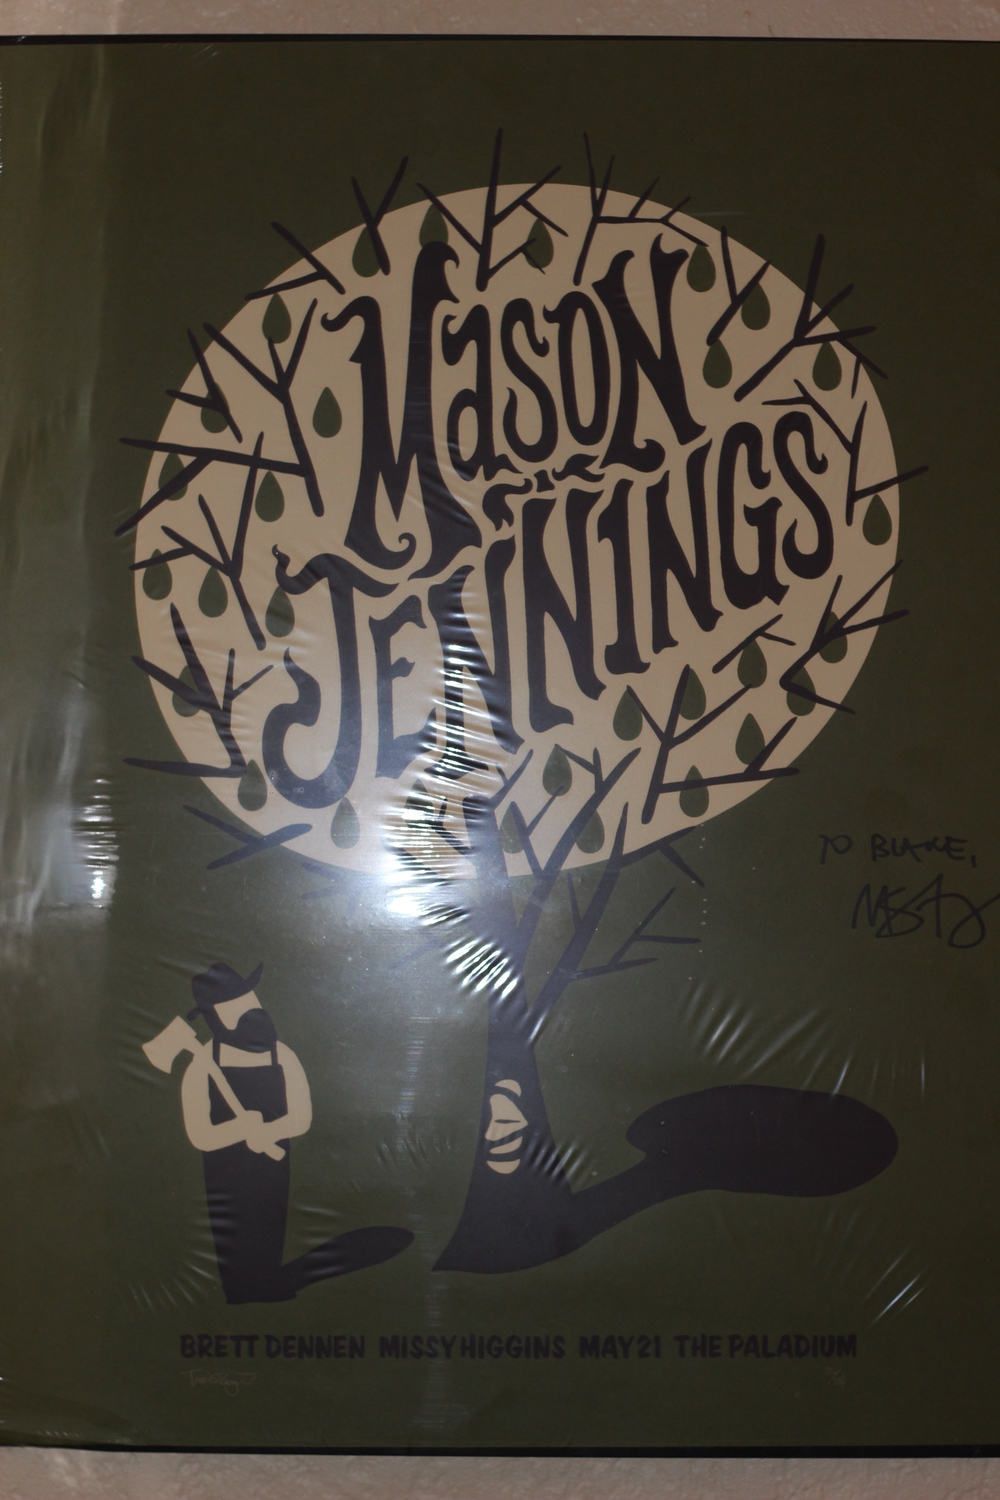 Memory: The time one of my best friends bought me a poster at Bonnaroo, then I met Mason Jennings at Bonnaroo and got it signed.